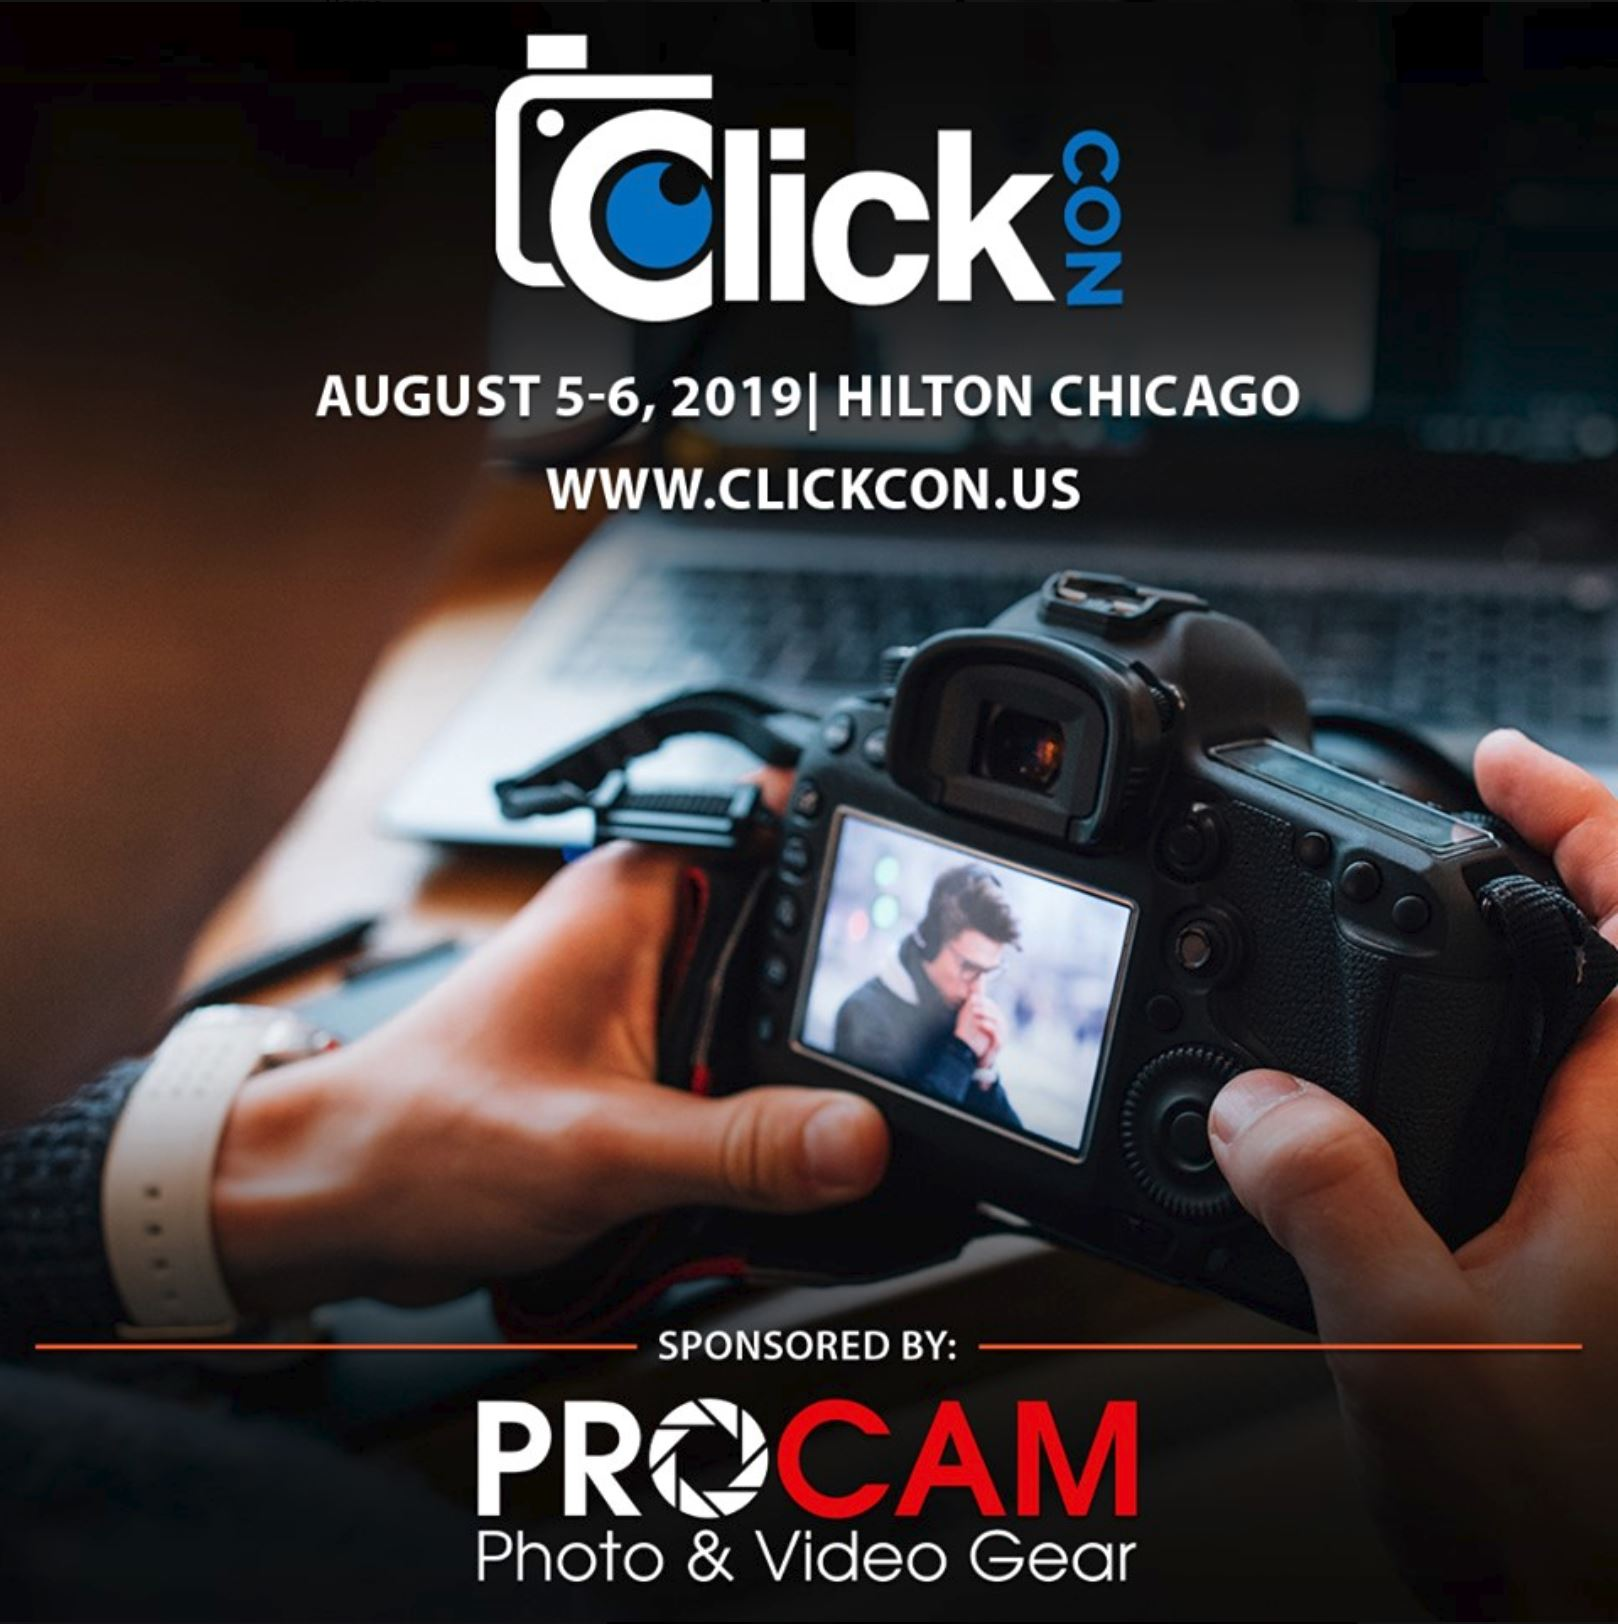 Skip Cohen will be speaking at ClickCon. Click to learn more about the show and to register.